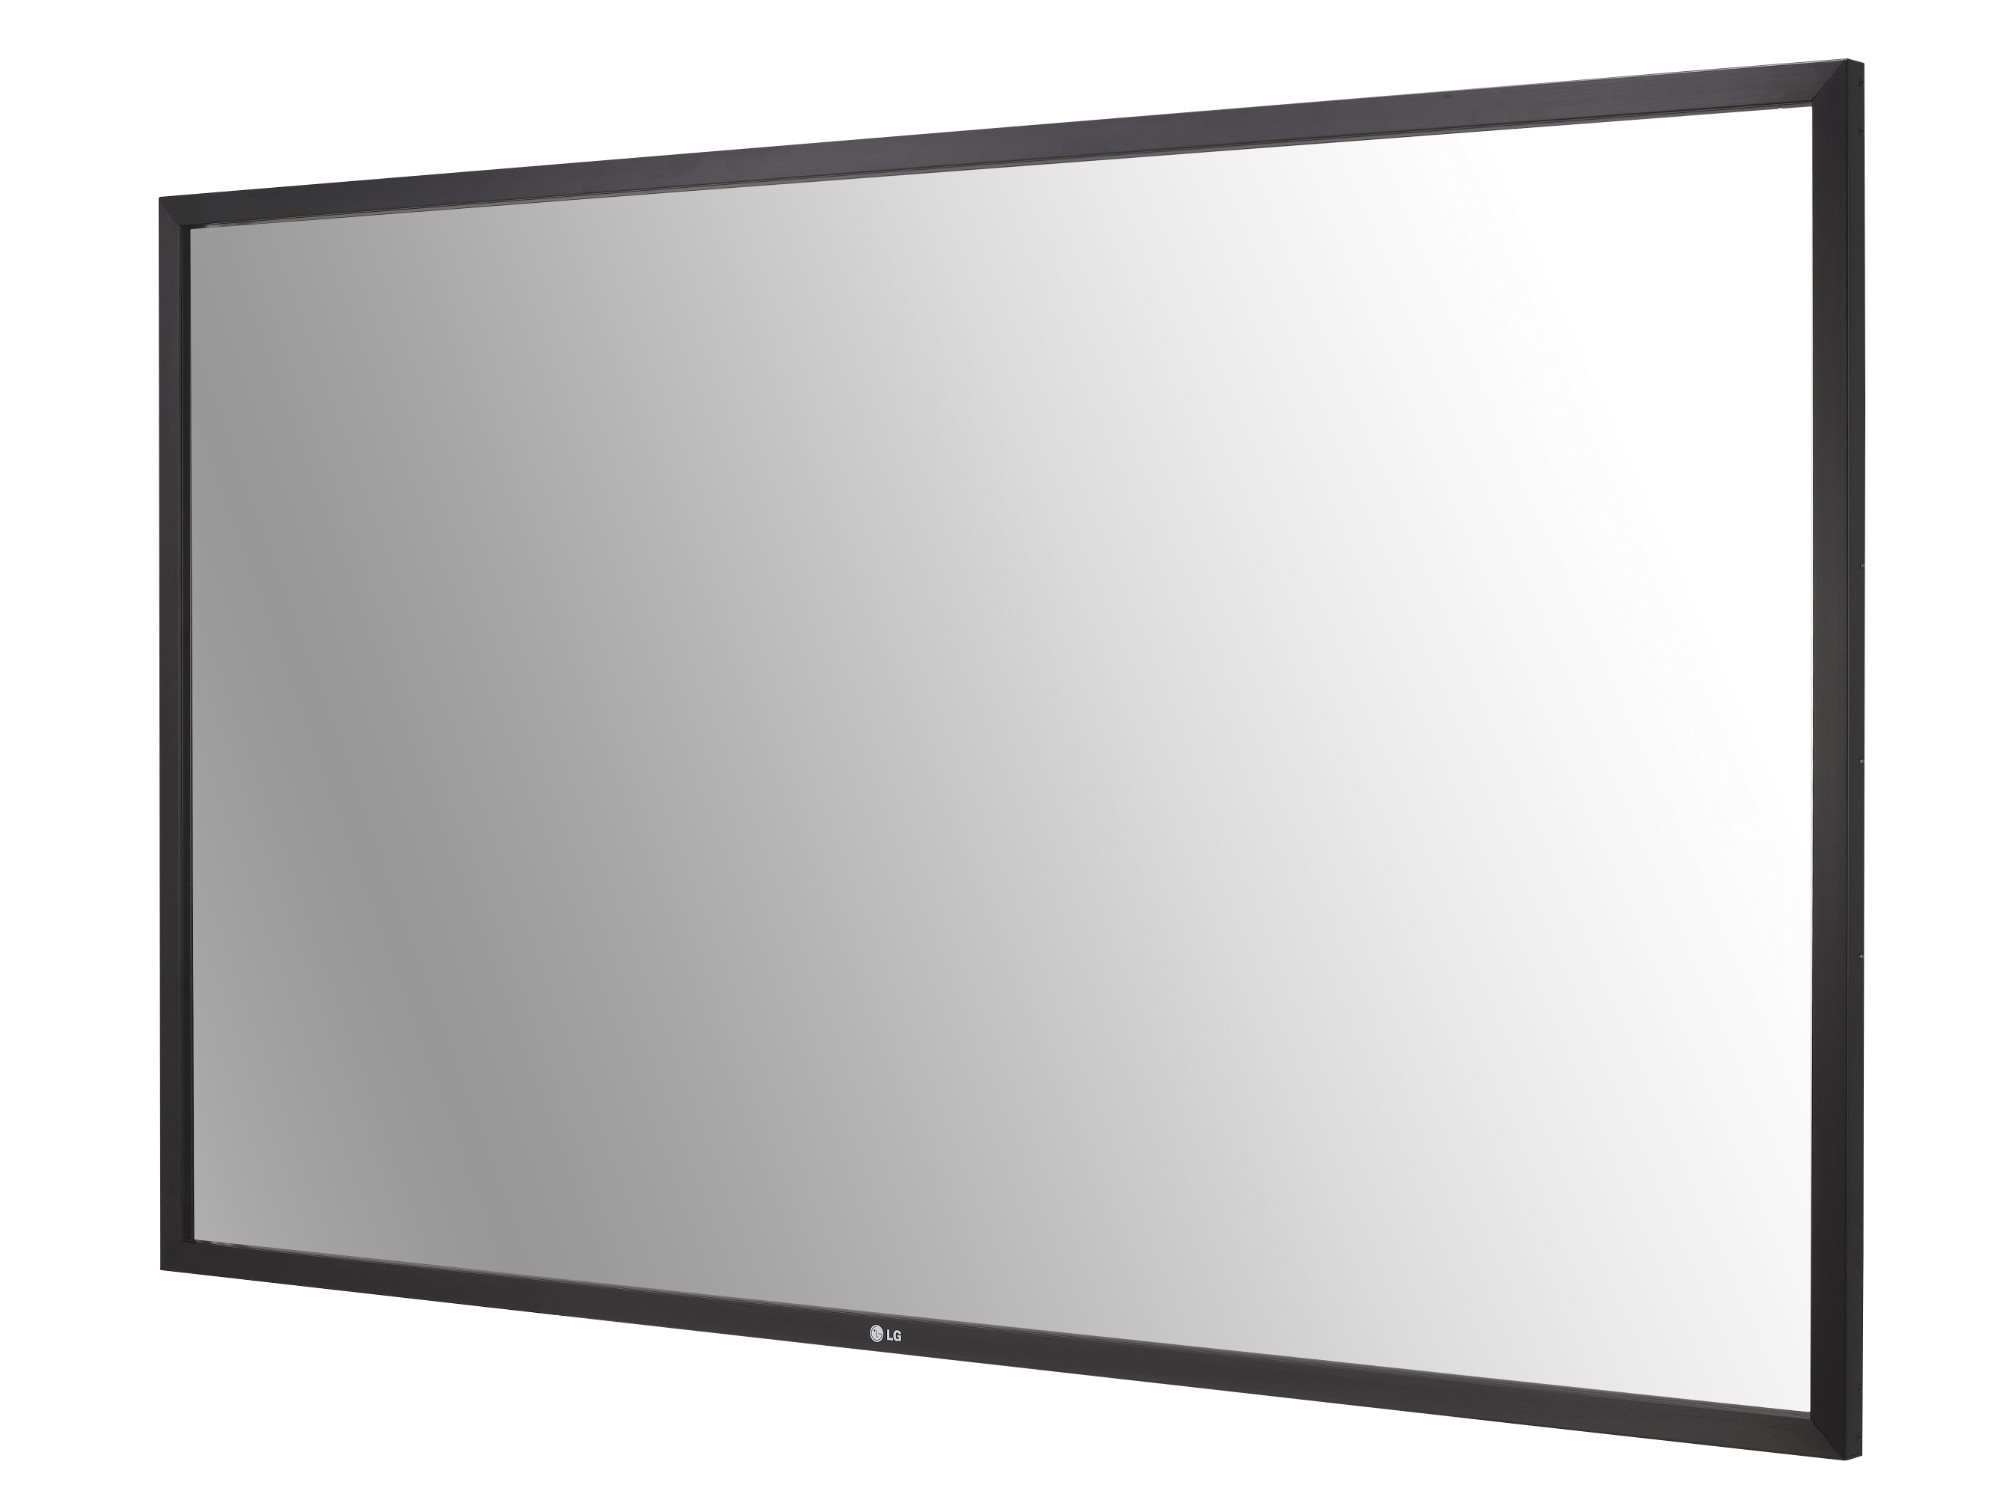 "LG KT-T320 32"" Multi-touch USB touch screen overlay"